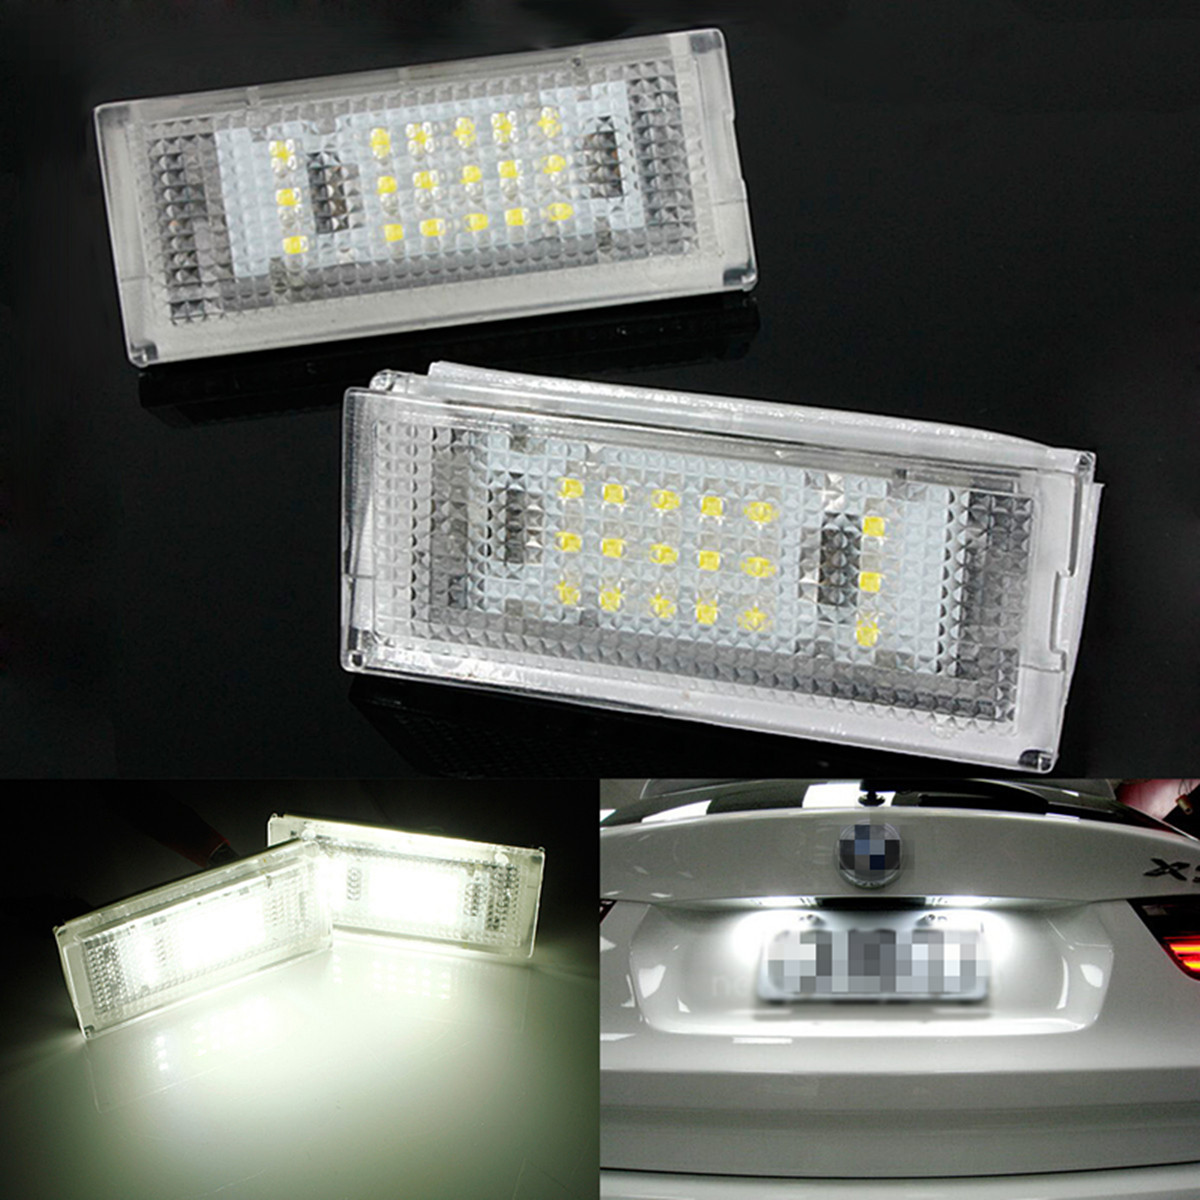 2Pcs 18 LED 6000K For HID License Plate Light Number Plate Lamp For BMW E46 4D 4Doors 323i 325i 328i 99-03 Error Free 2pcs led license plate light lamp 24 smd led license plate light lamp white error free for bmw e39 e60 e61 e90 e91 m3 m5 x5 x6